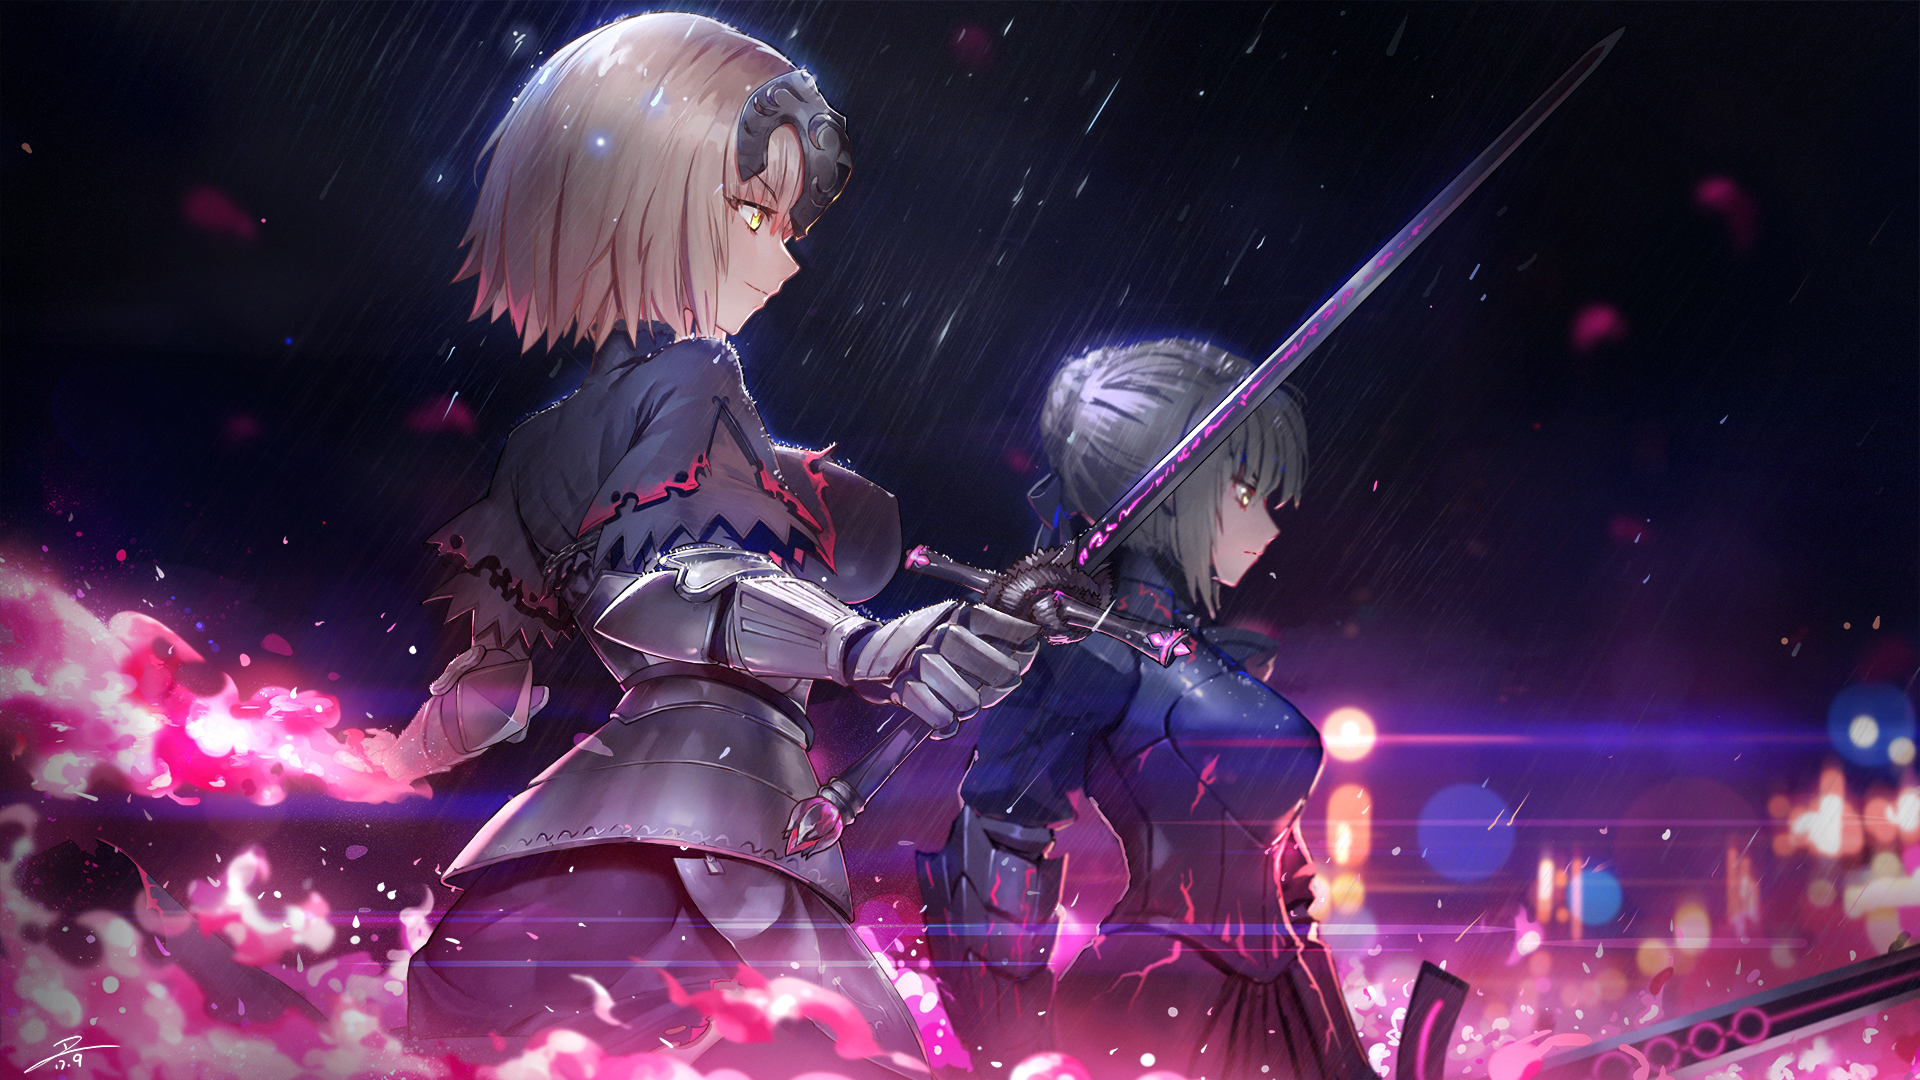 Fate grand order anime hd anime 4k wallpapers images for Order wallpaper